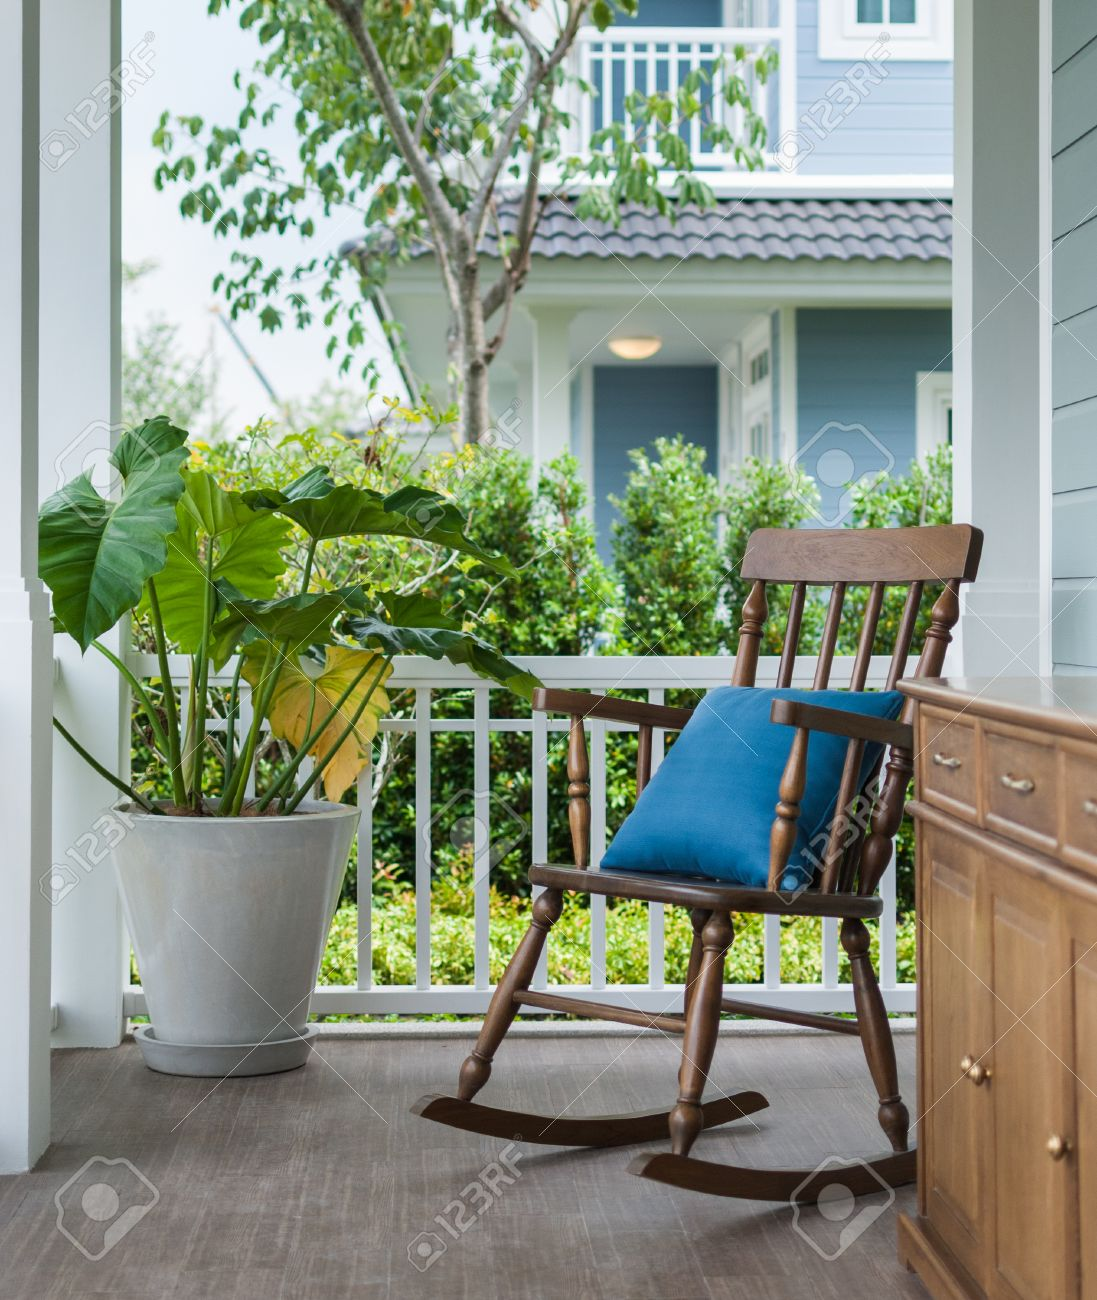 Wooden Rocking Chair On Front Porch With Pillow And Planter Stock